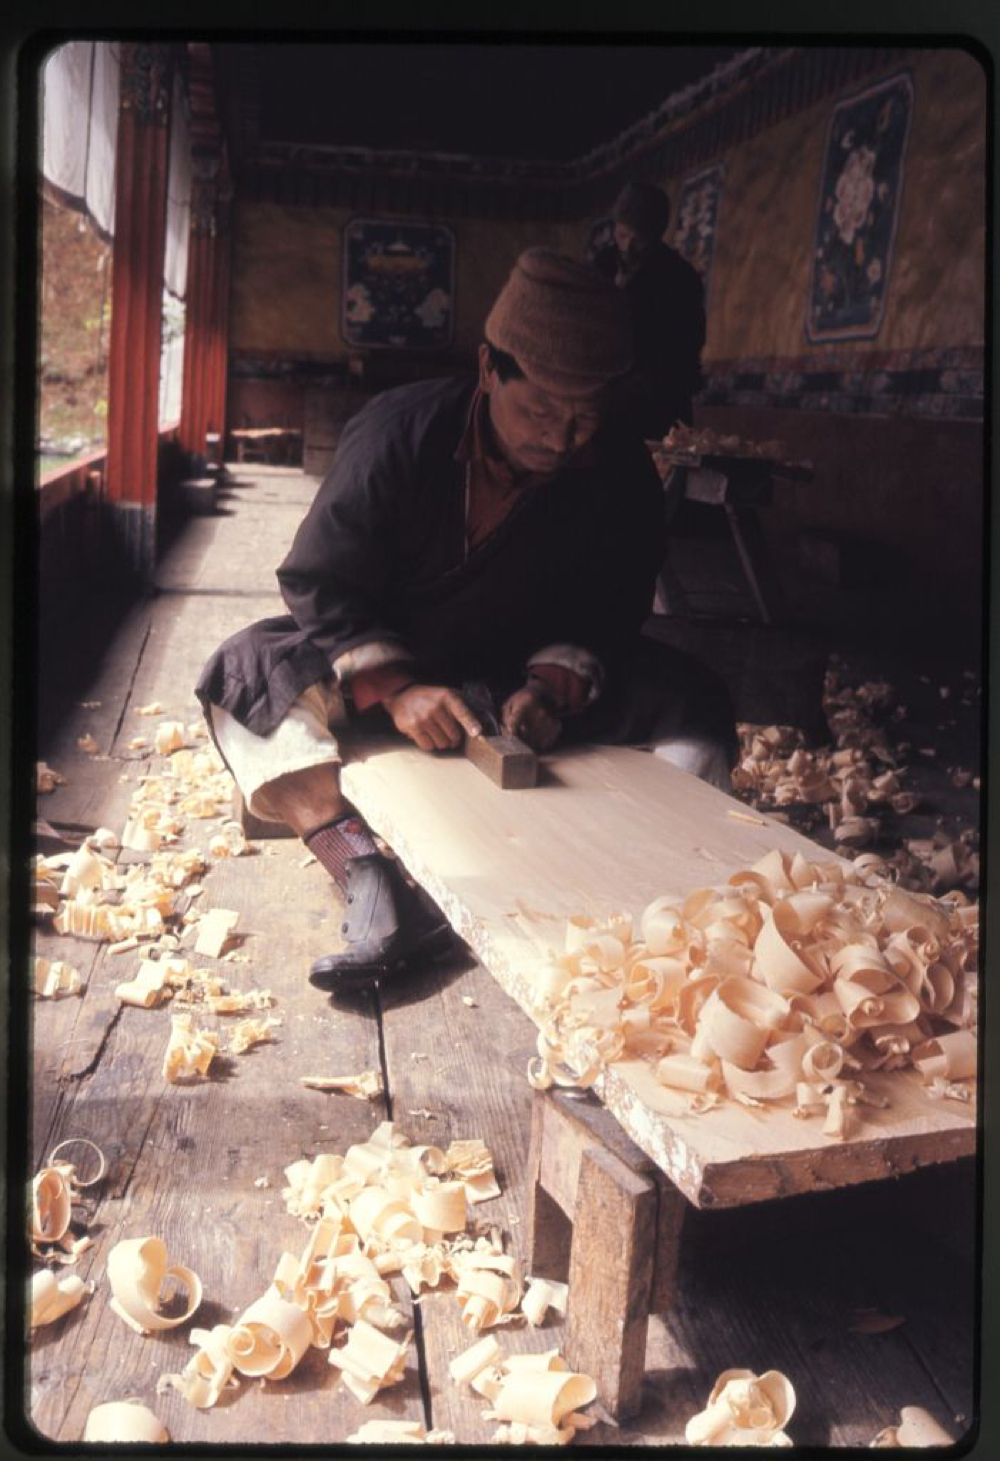 Wood carver, Lachung monastery, Sikkim